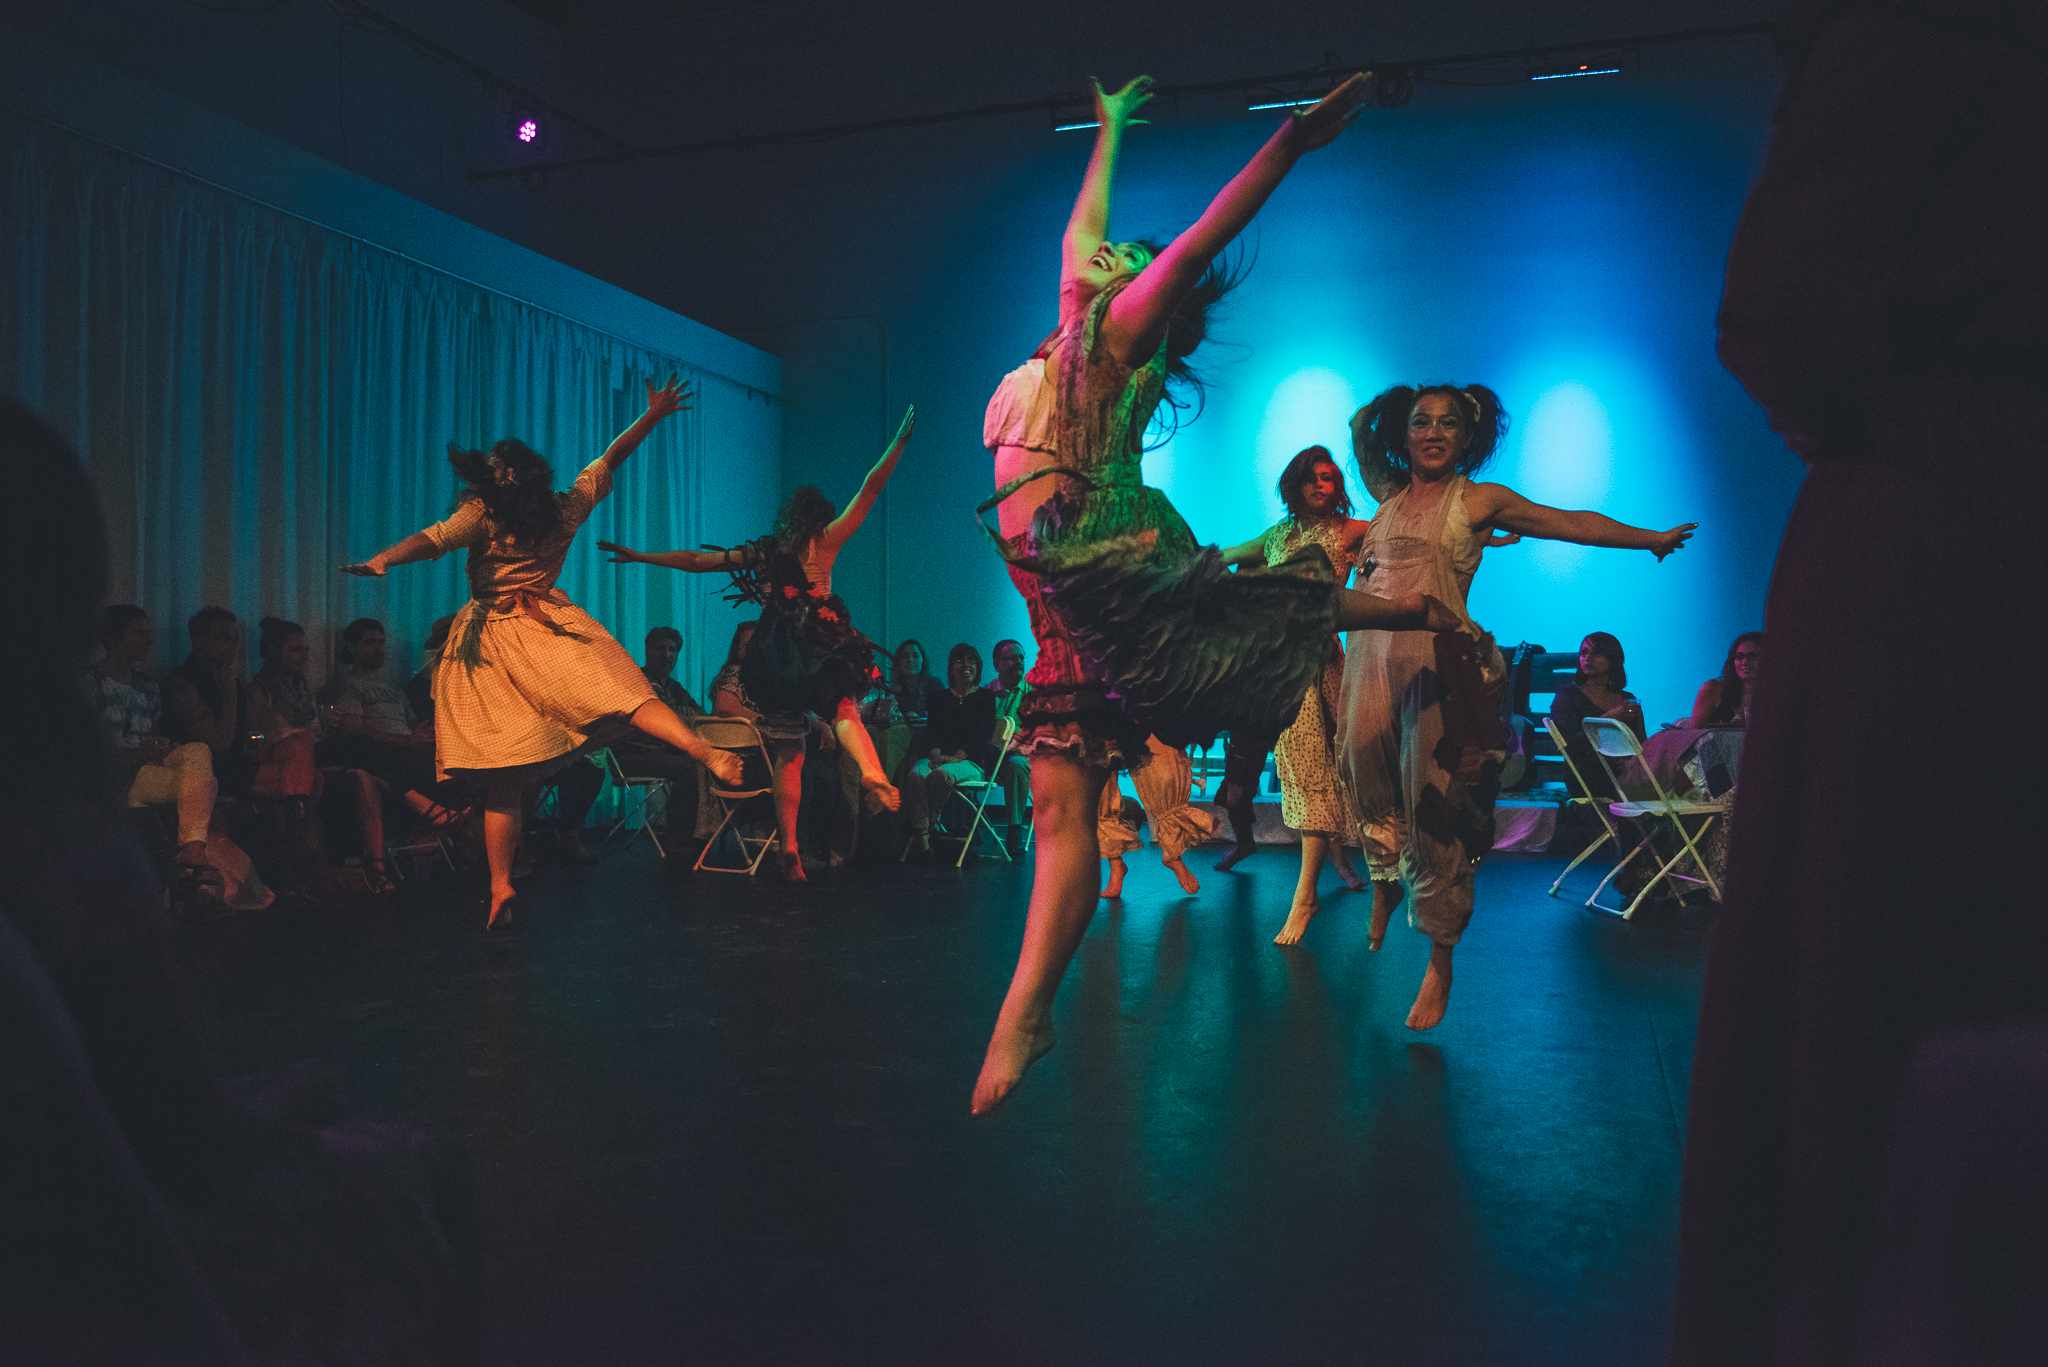 Dancers leaping during Austin Wild West theater performance